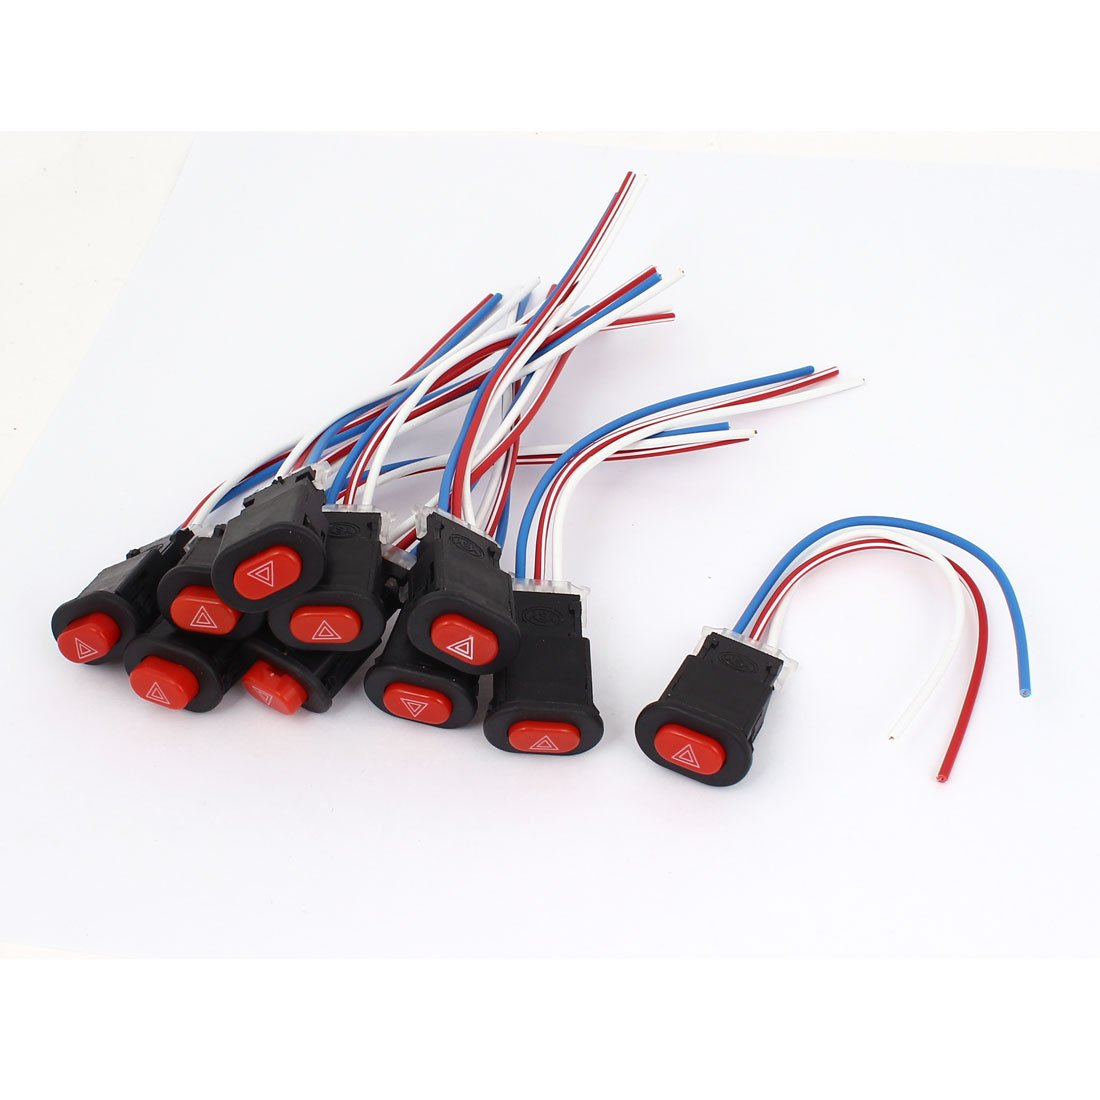 Latching Type Light Switch 10 Pcs for Scooter